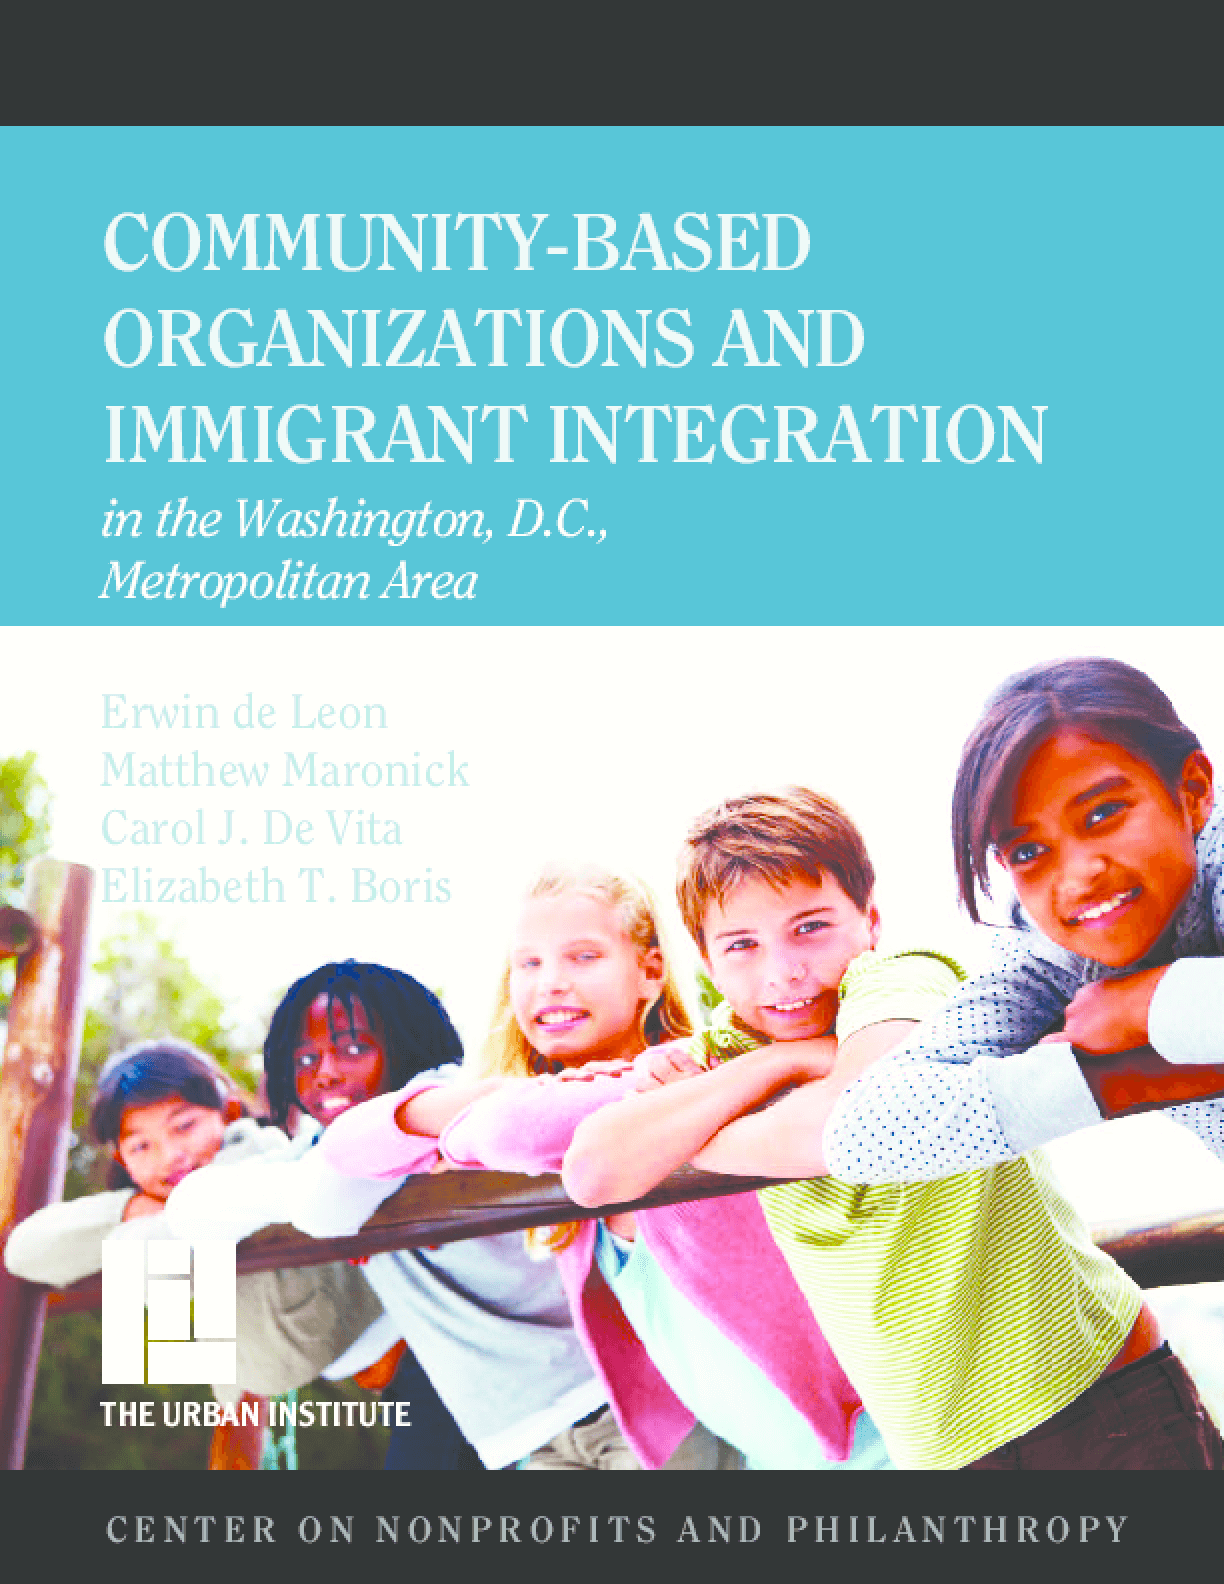 Community-Based Organizations and Immigrant Integration in the Washington, D.C., Metropolitan Area